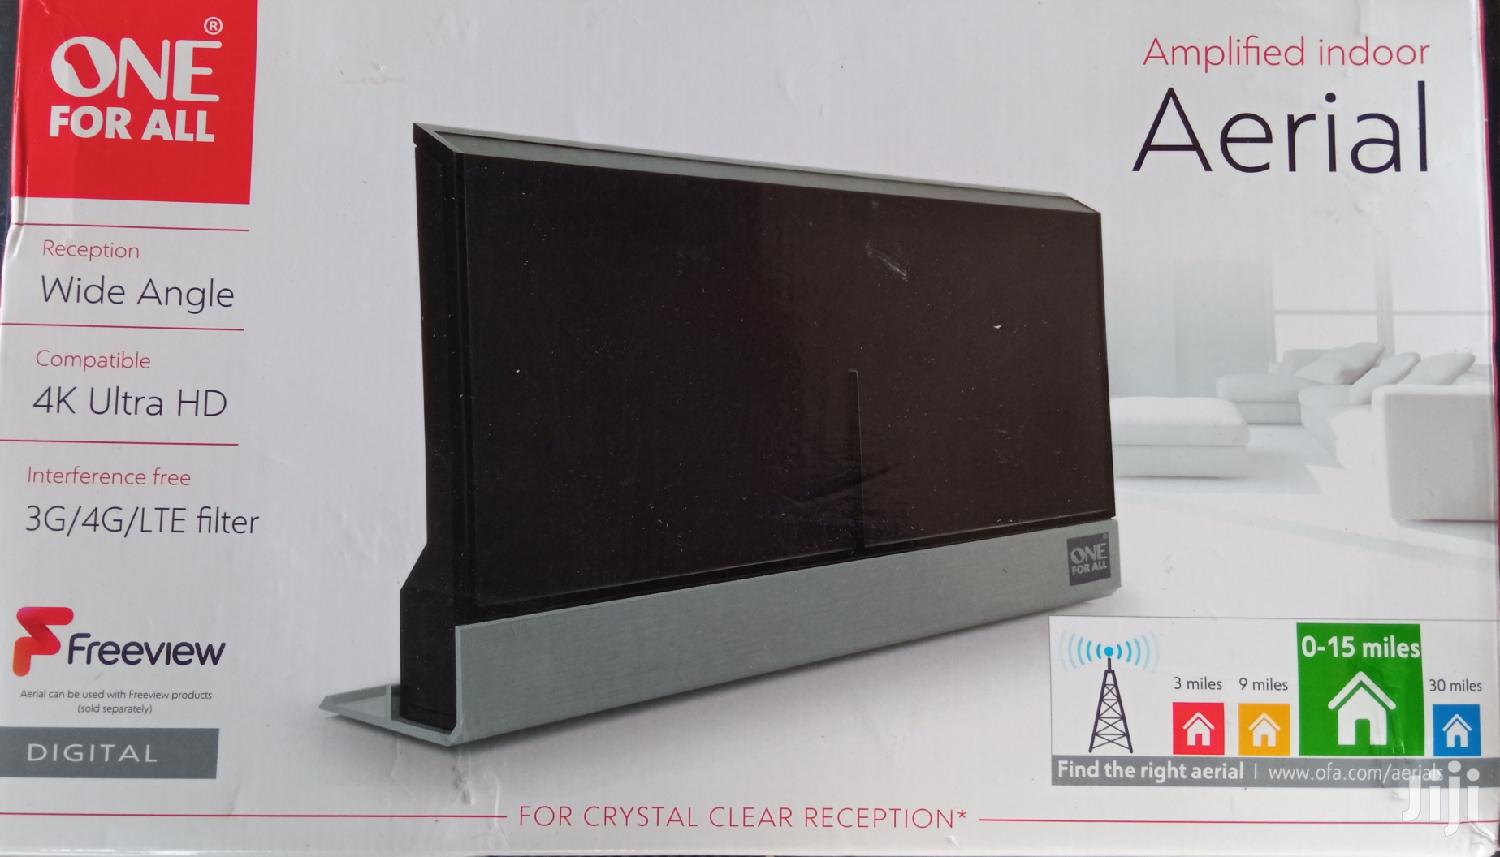 Freeview Amplified Indoor Aerial